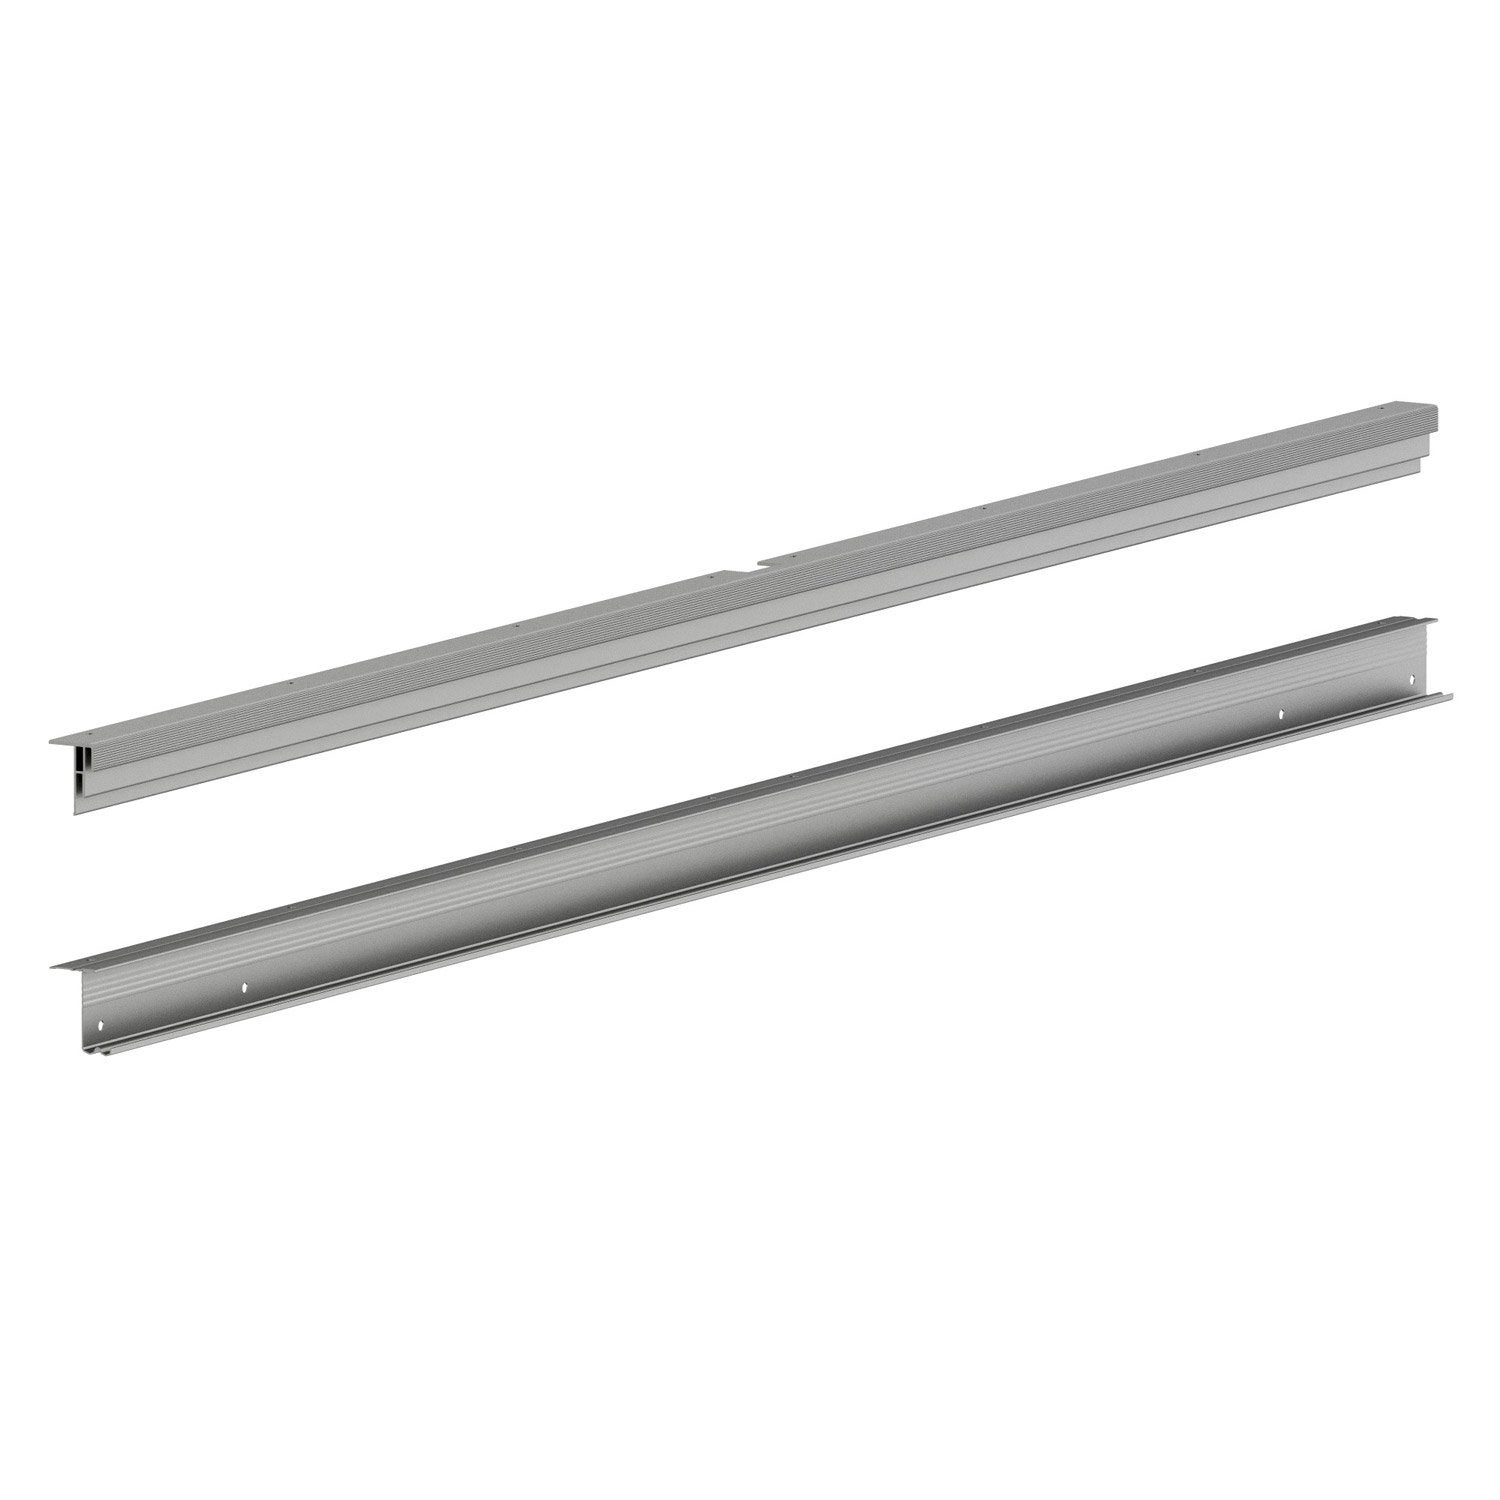 Rail coulissant pour porte spaceo home x cm - Rail porte coulissante leroy merlin ...